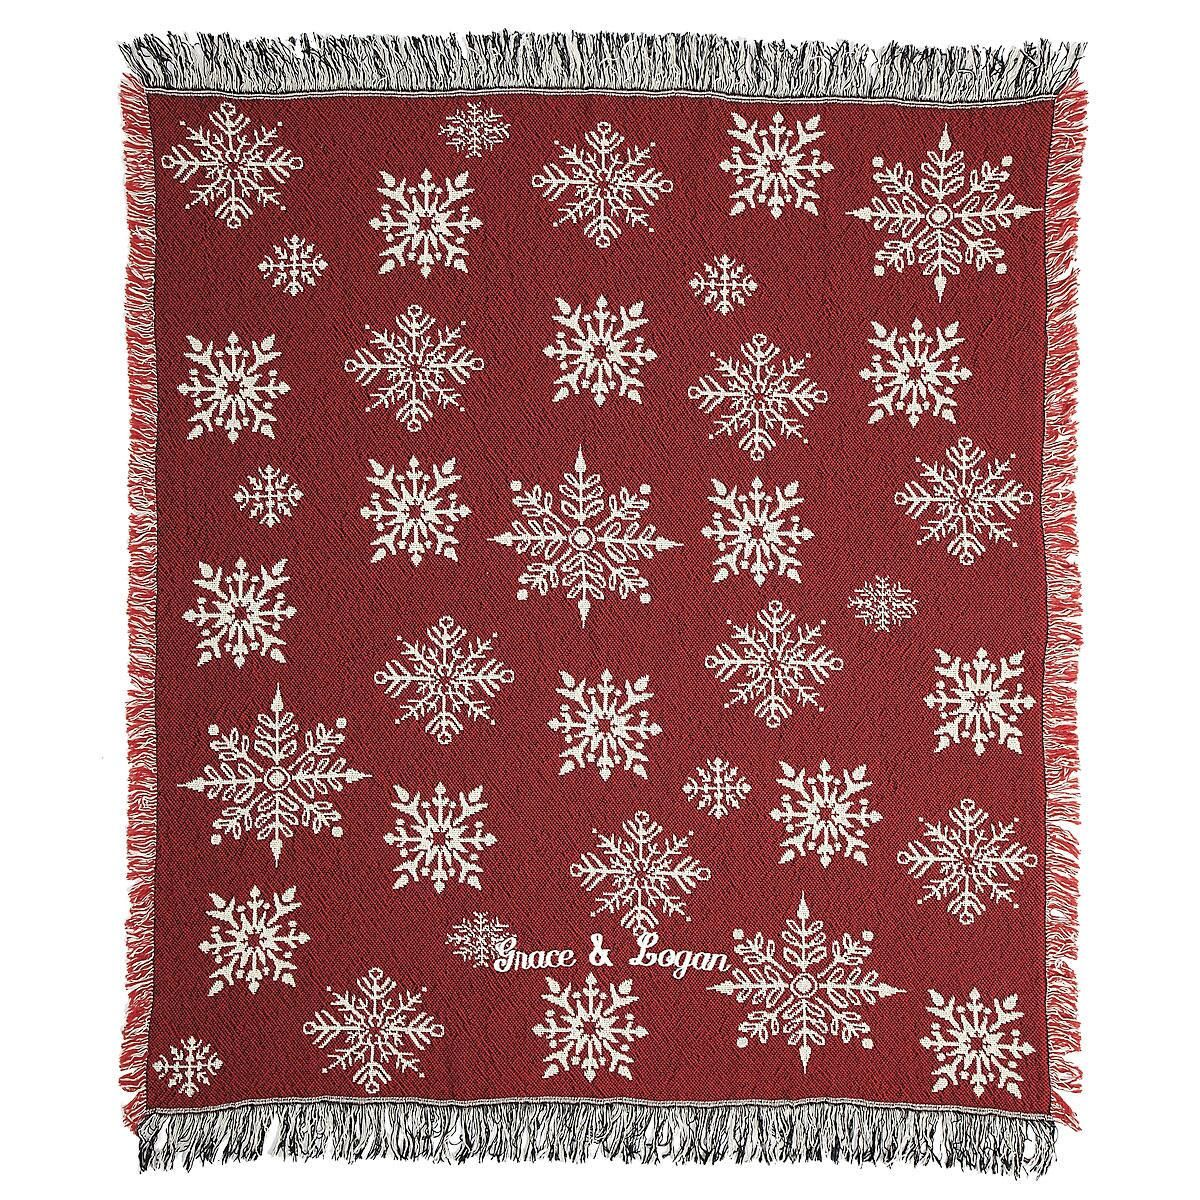 Red and White Snowflake Throw